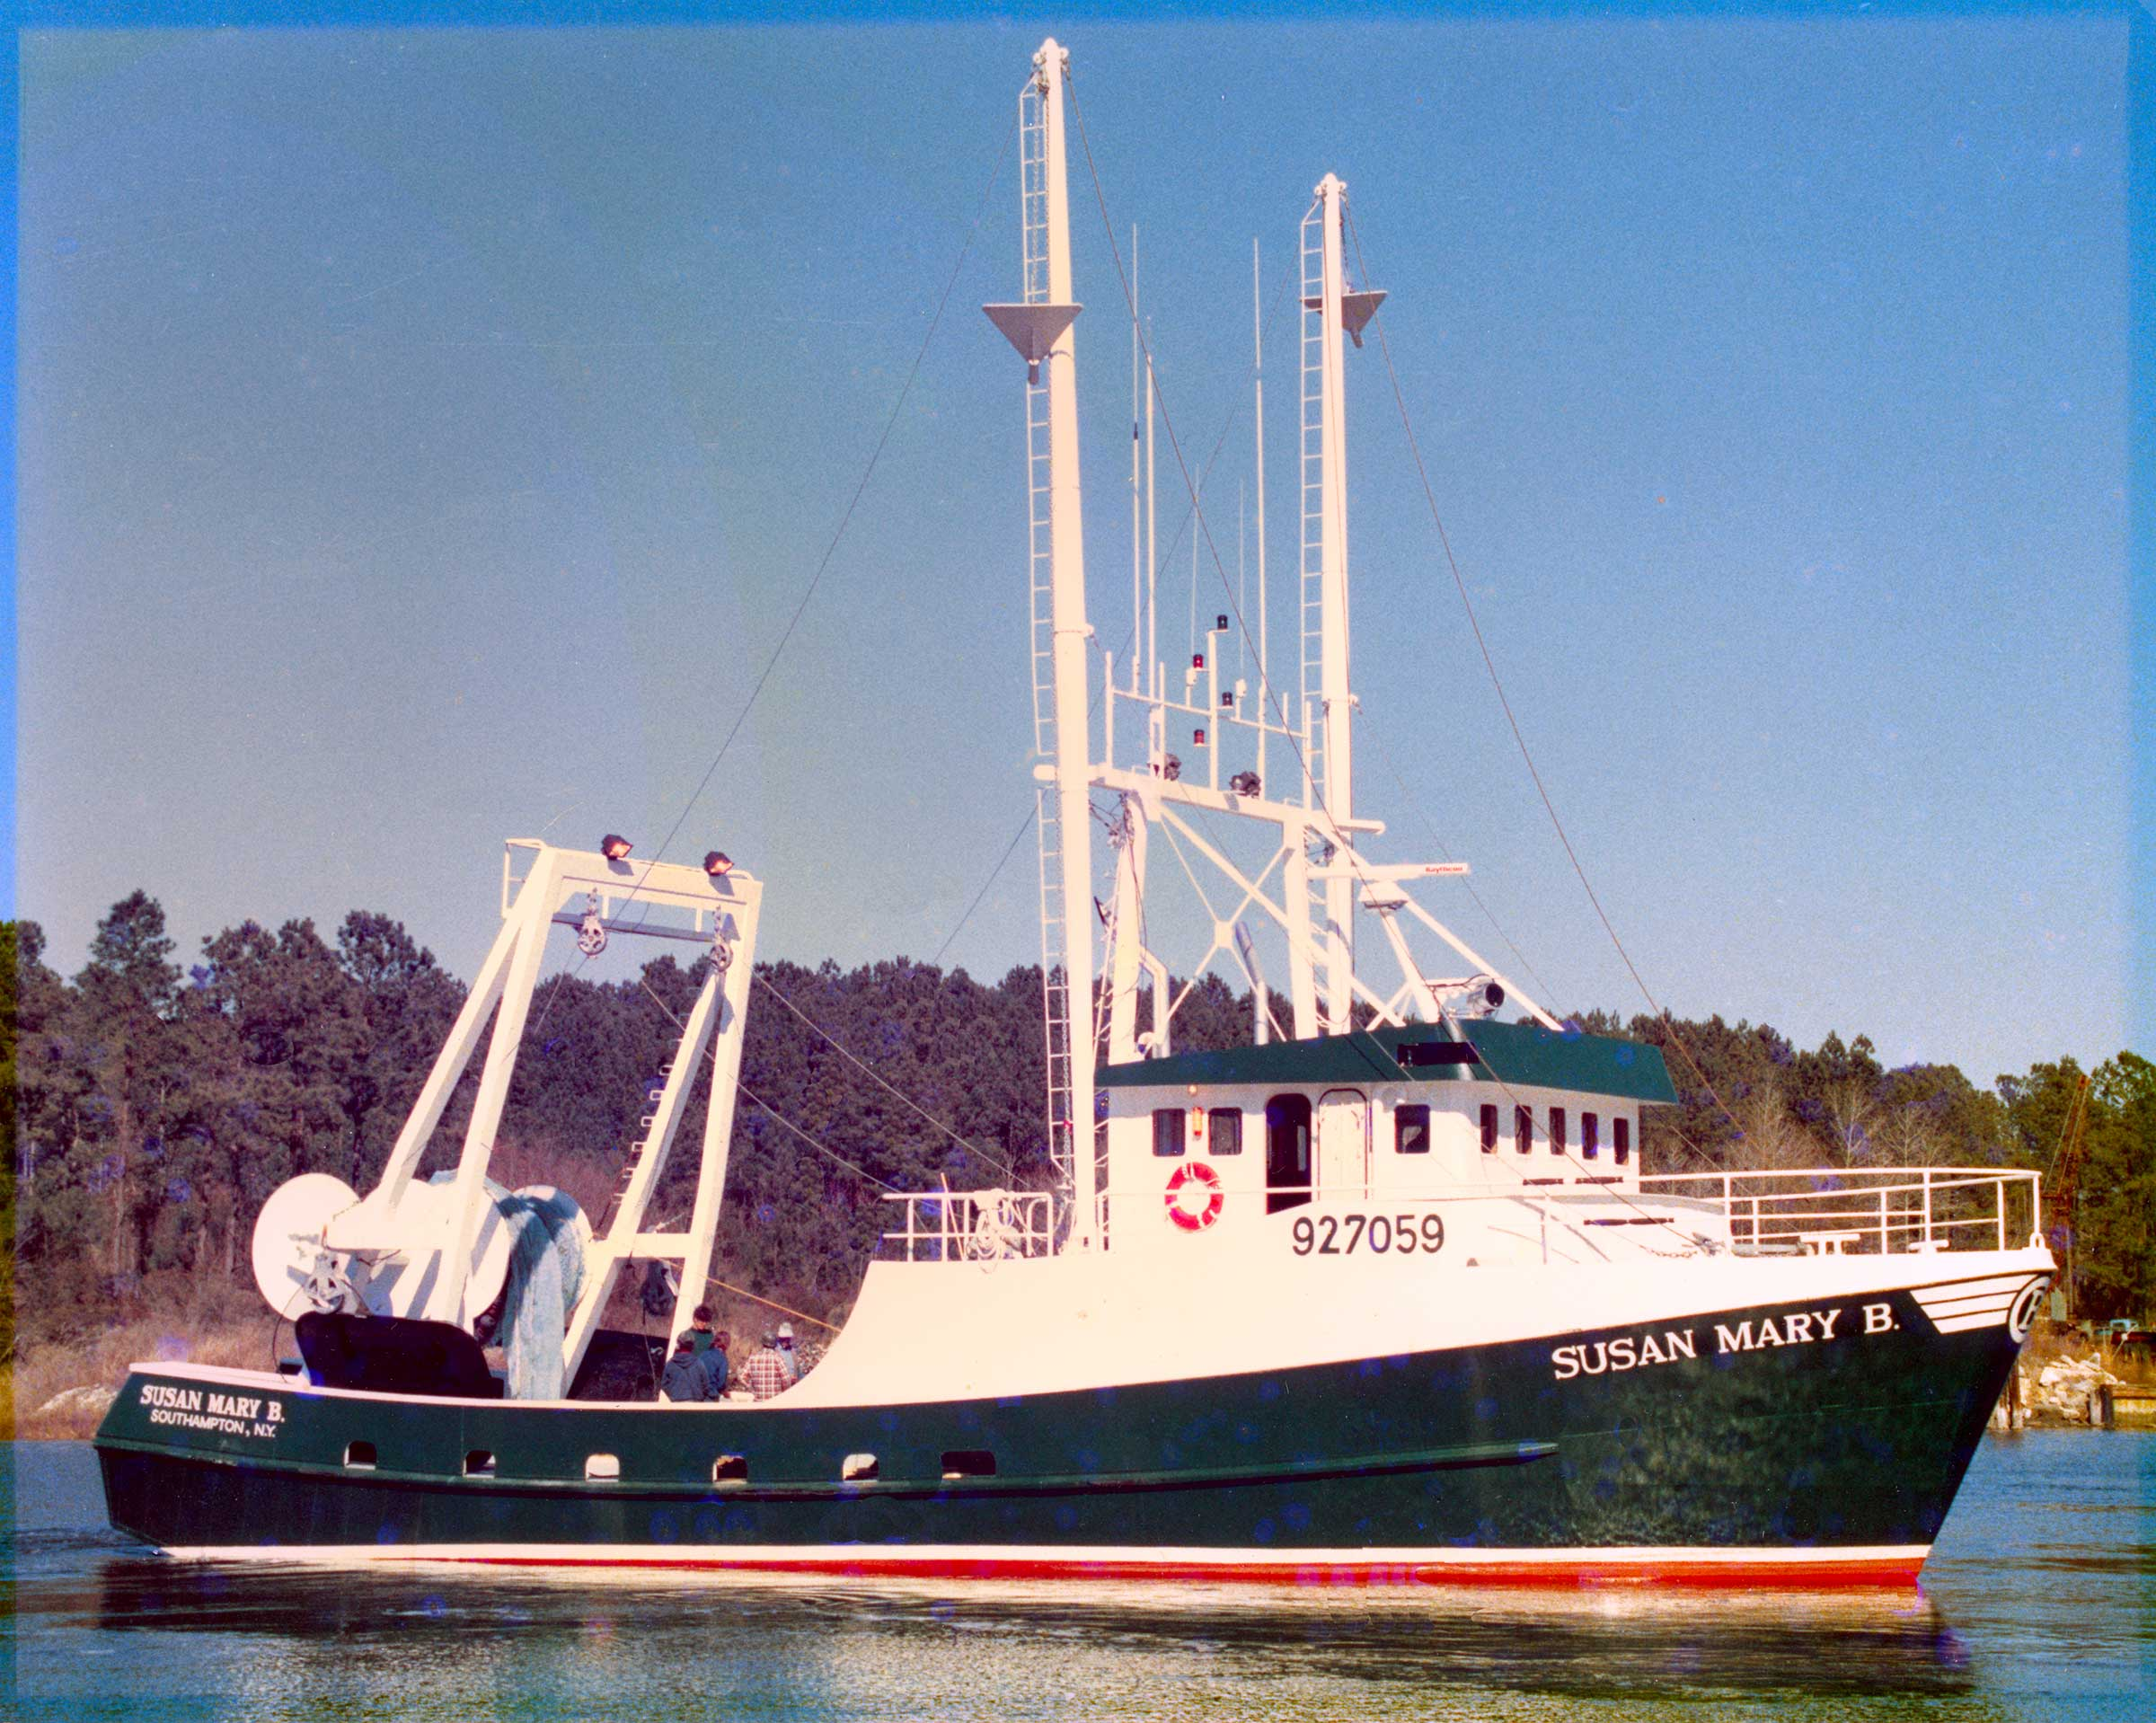 Susan Mary B, launched 1988